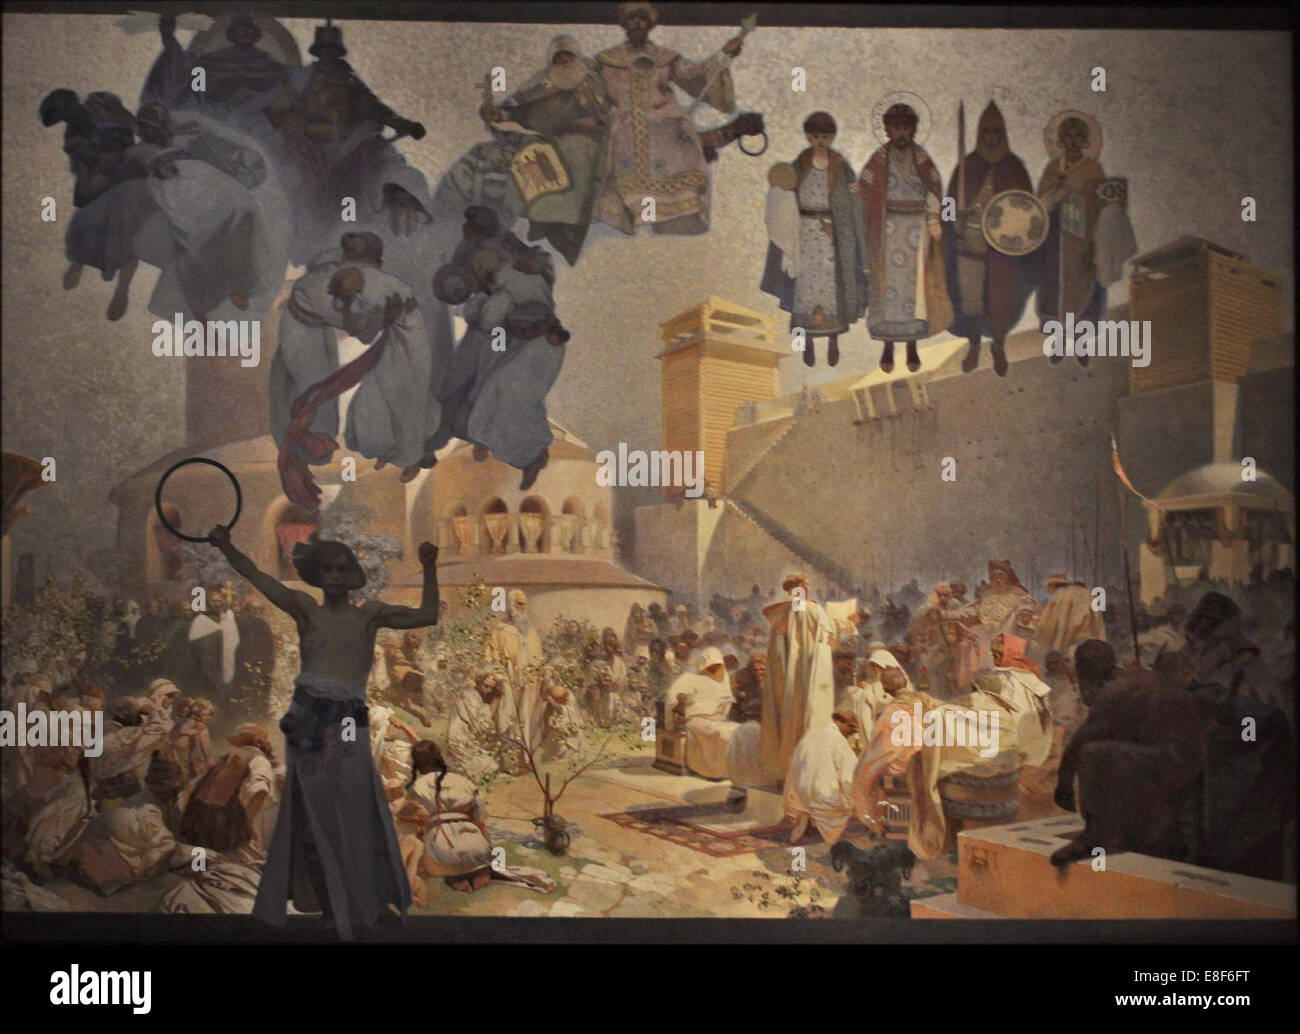 The Introduction of the Slavonic Liturgy (The cycle The Slav Epic). Artist: Mucha, Alfons Marie (1860-1939) - Stock Image